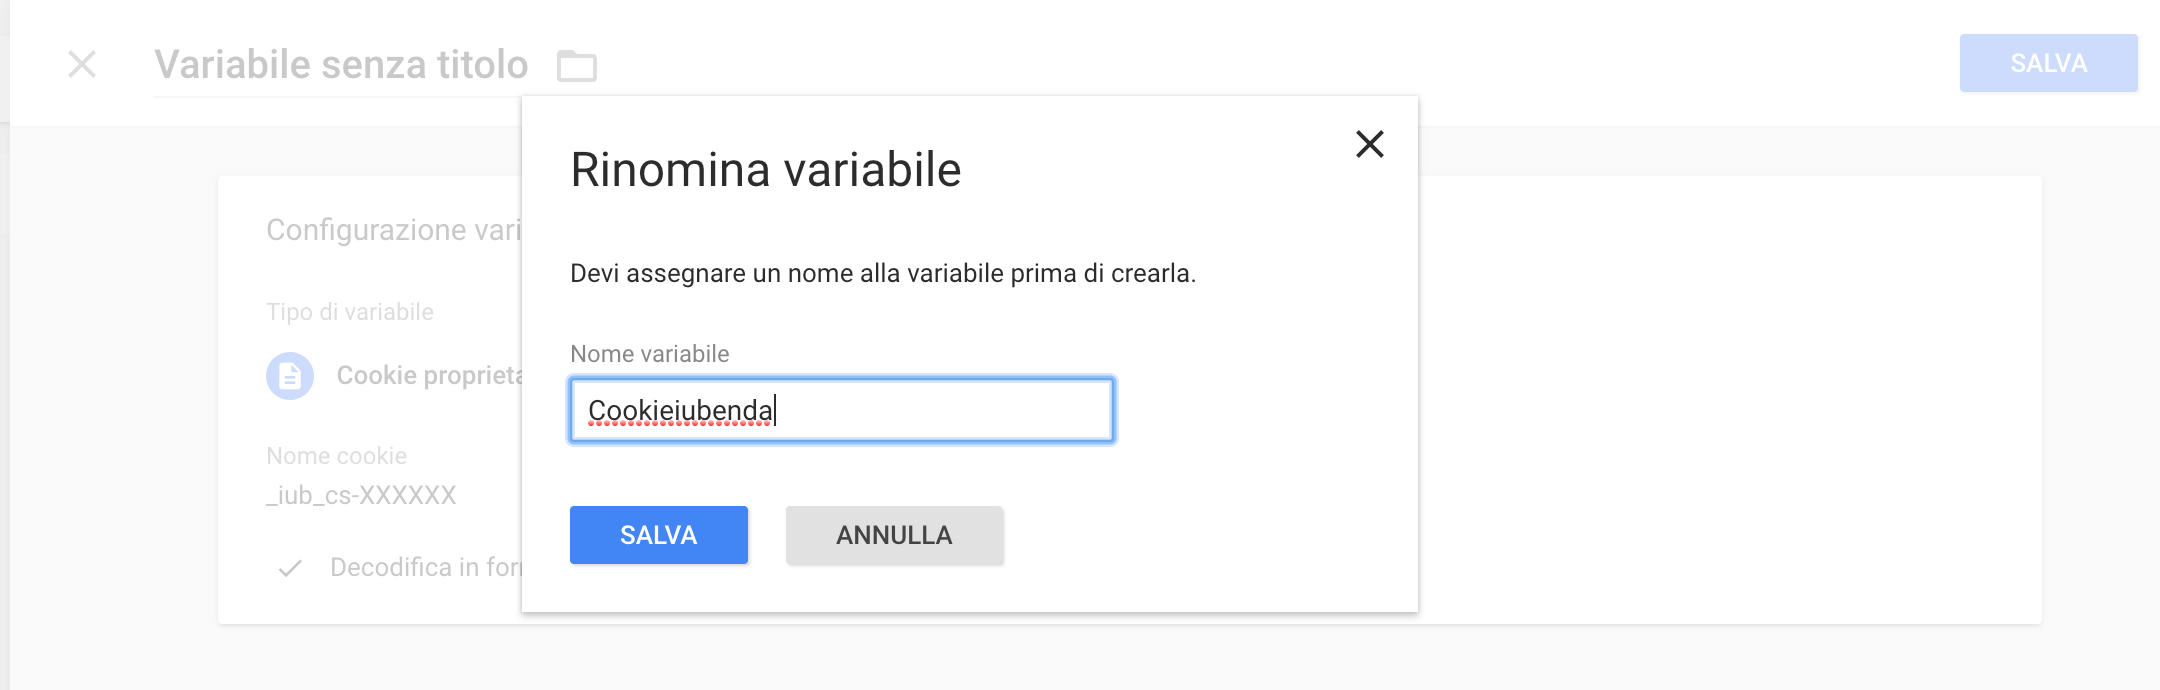 Google Tag Manager - Rinonima variabile